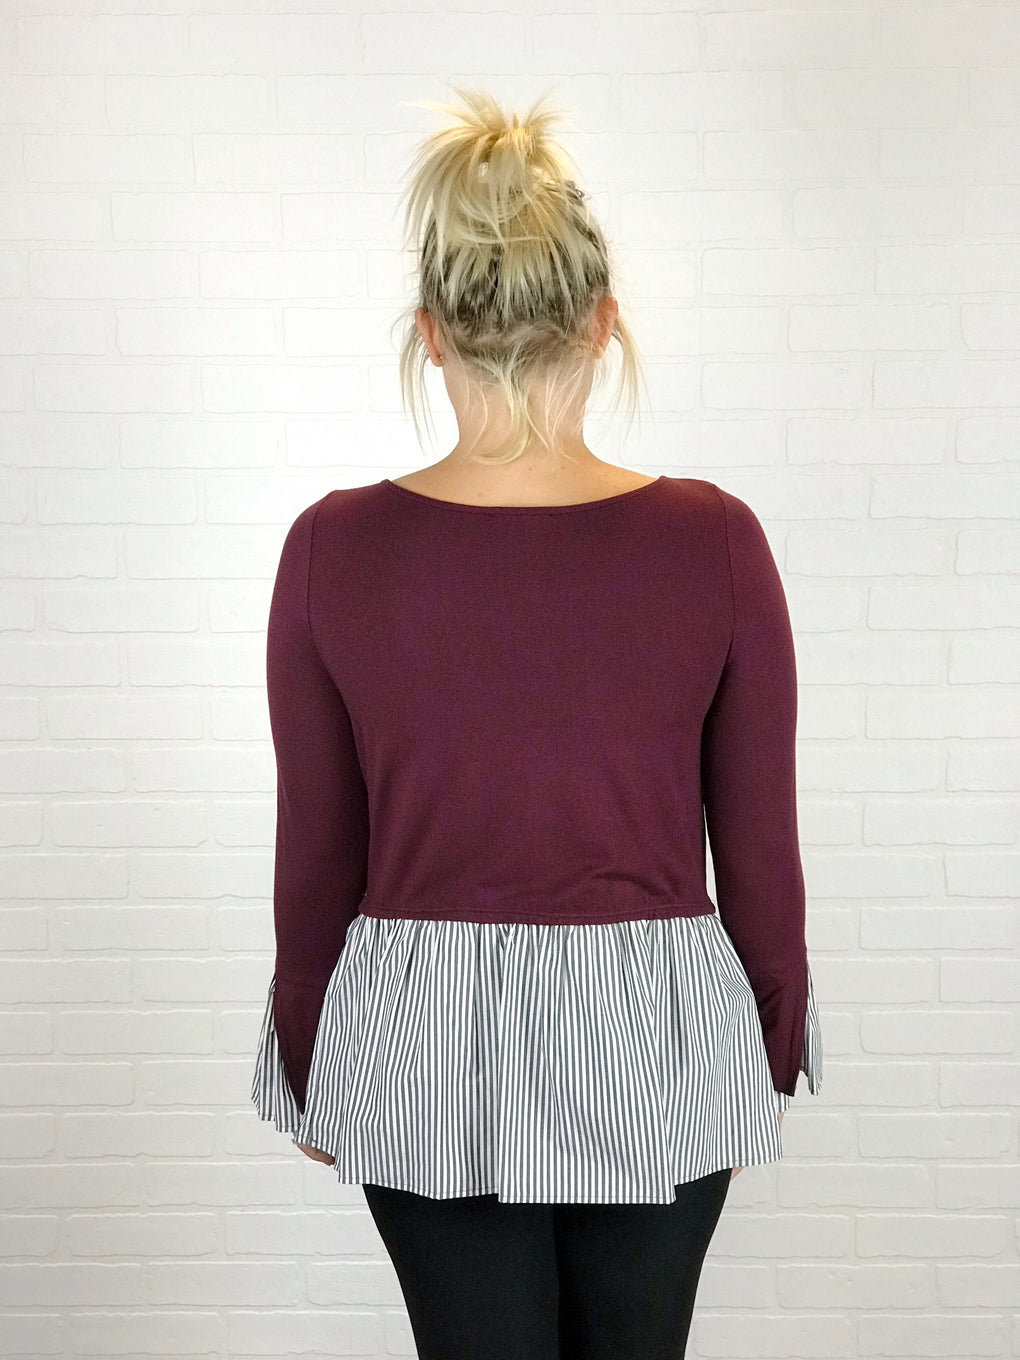 COURTNEY LONG SLEEVE LAYERED TOP